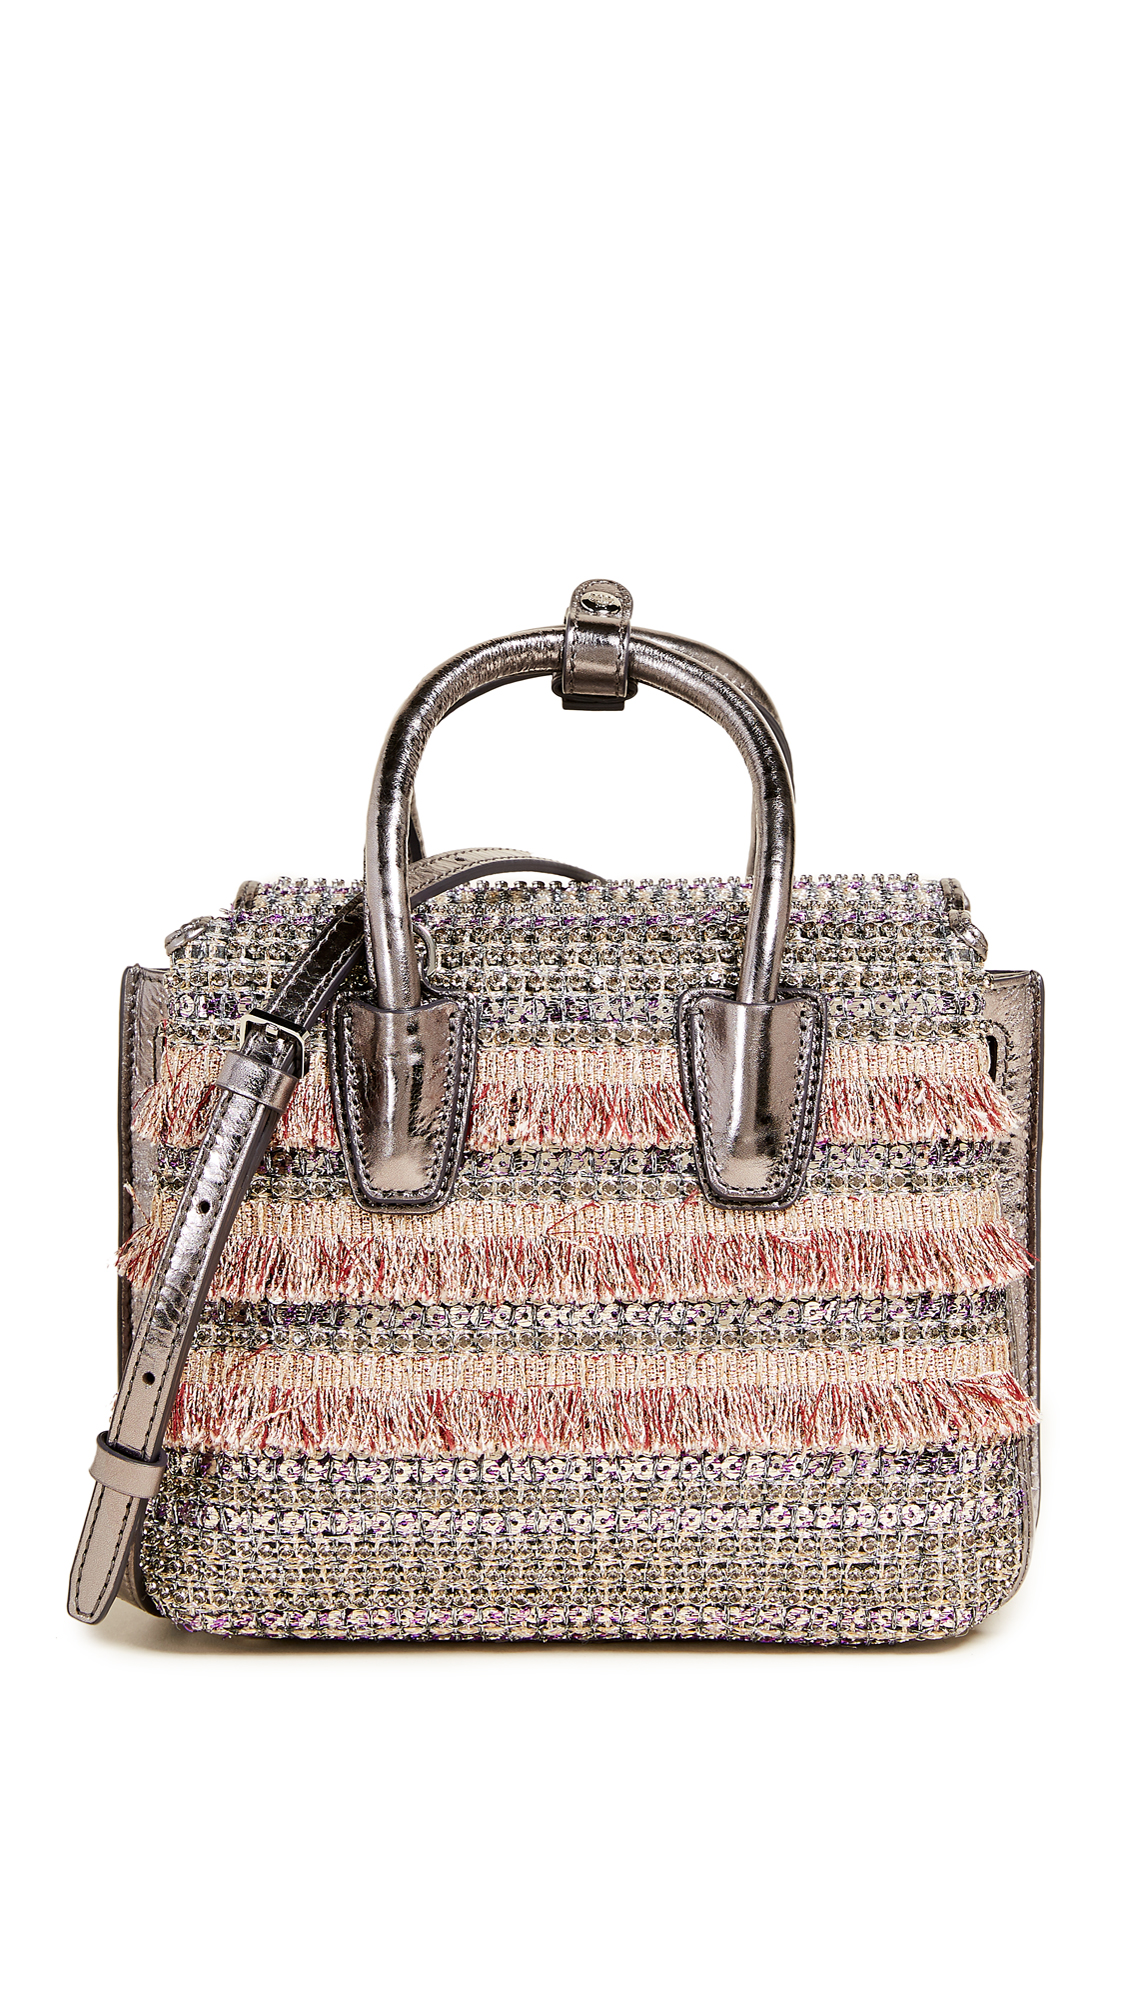 MCM Milla Crystal Mini Satchel - Pink Blush